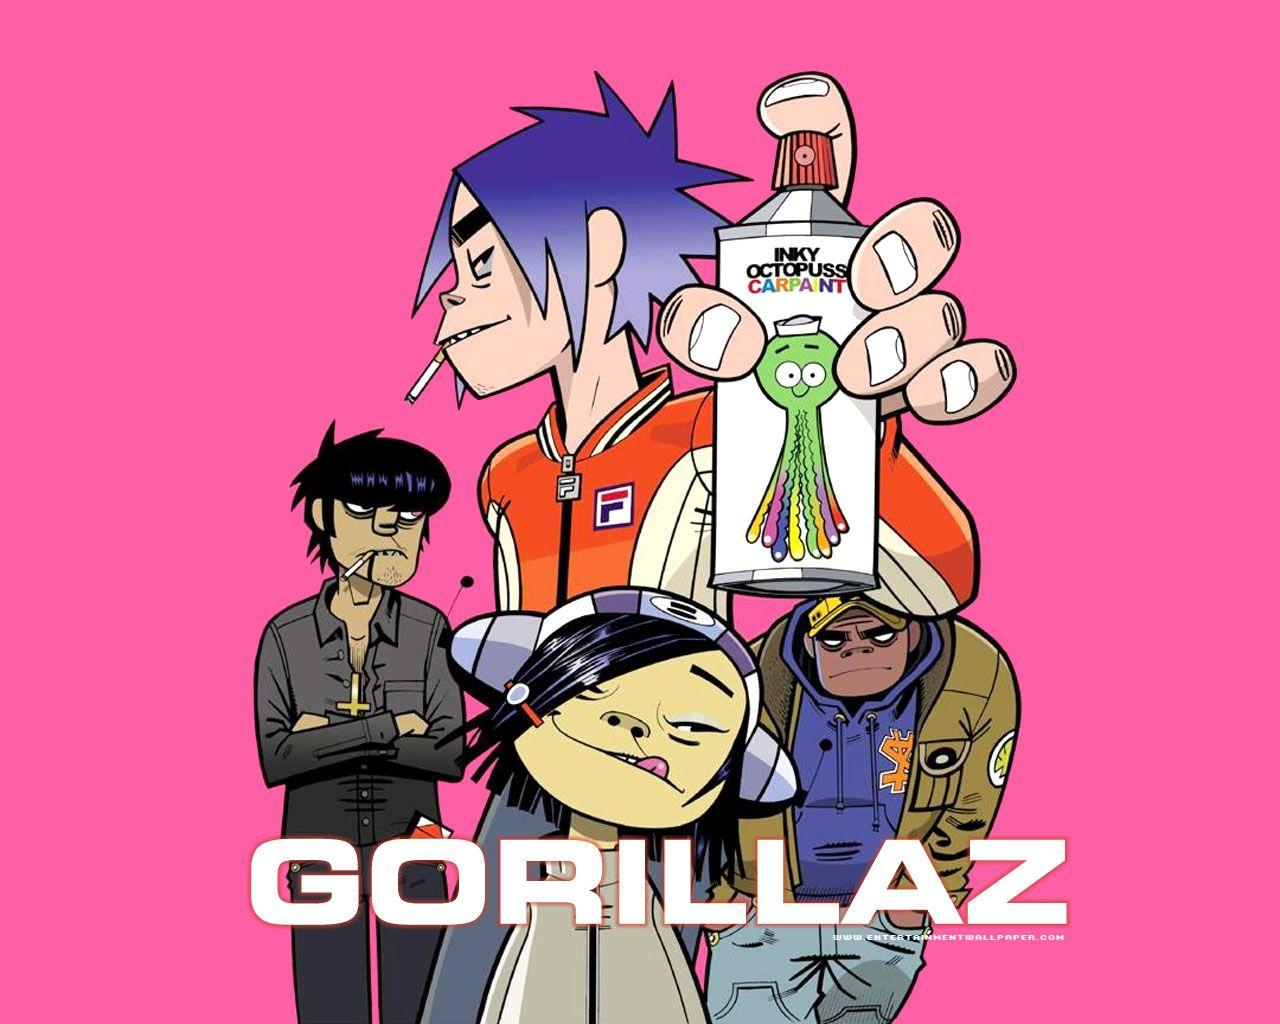 download wallpaper gorillaz desktop - photo #2